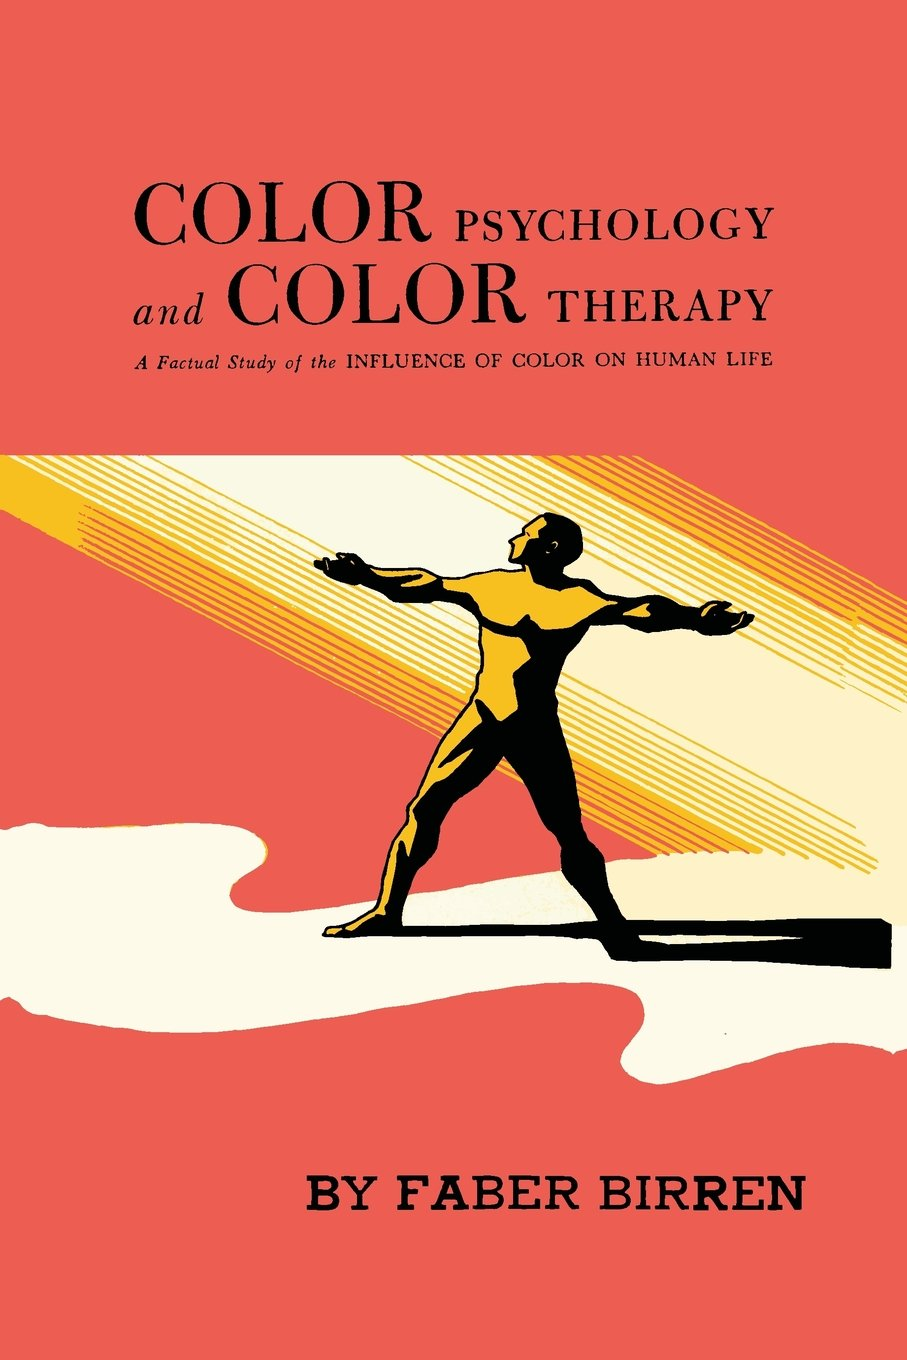 Amazoncom Color Psychology and Color Therapy A Factual Study of